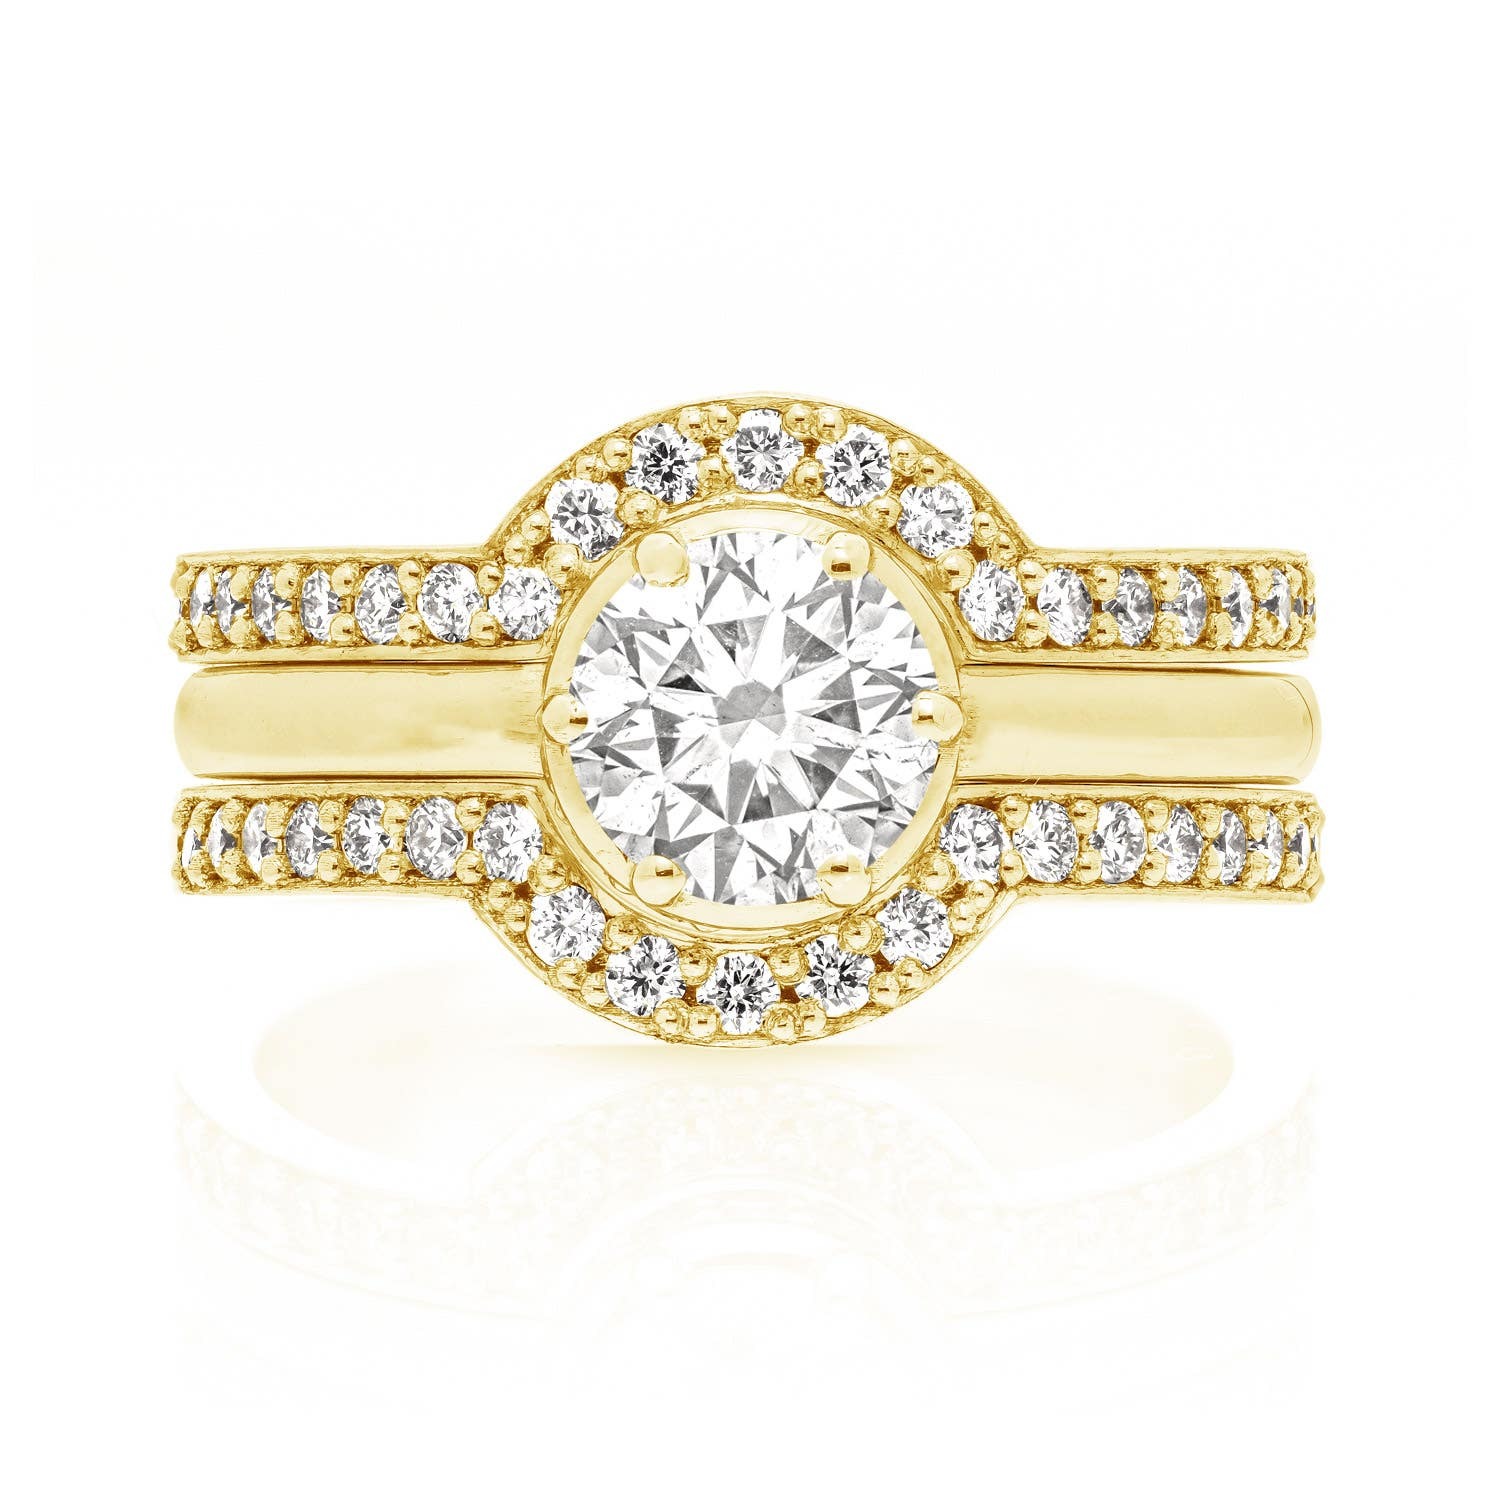 Callida Solitaire Engagement Ring - Image